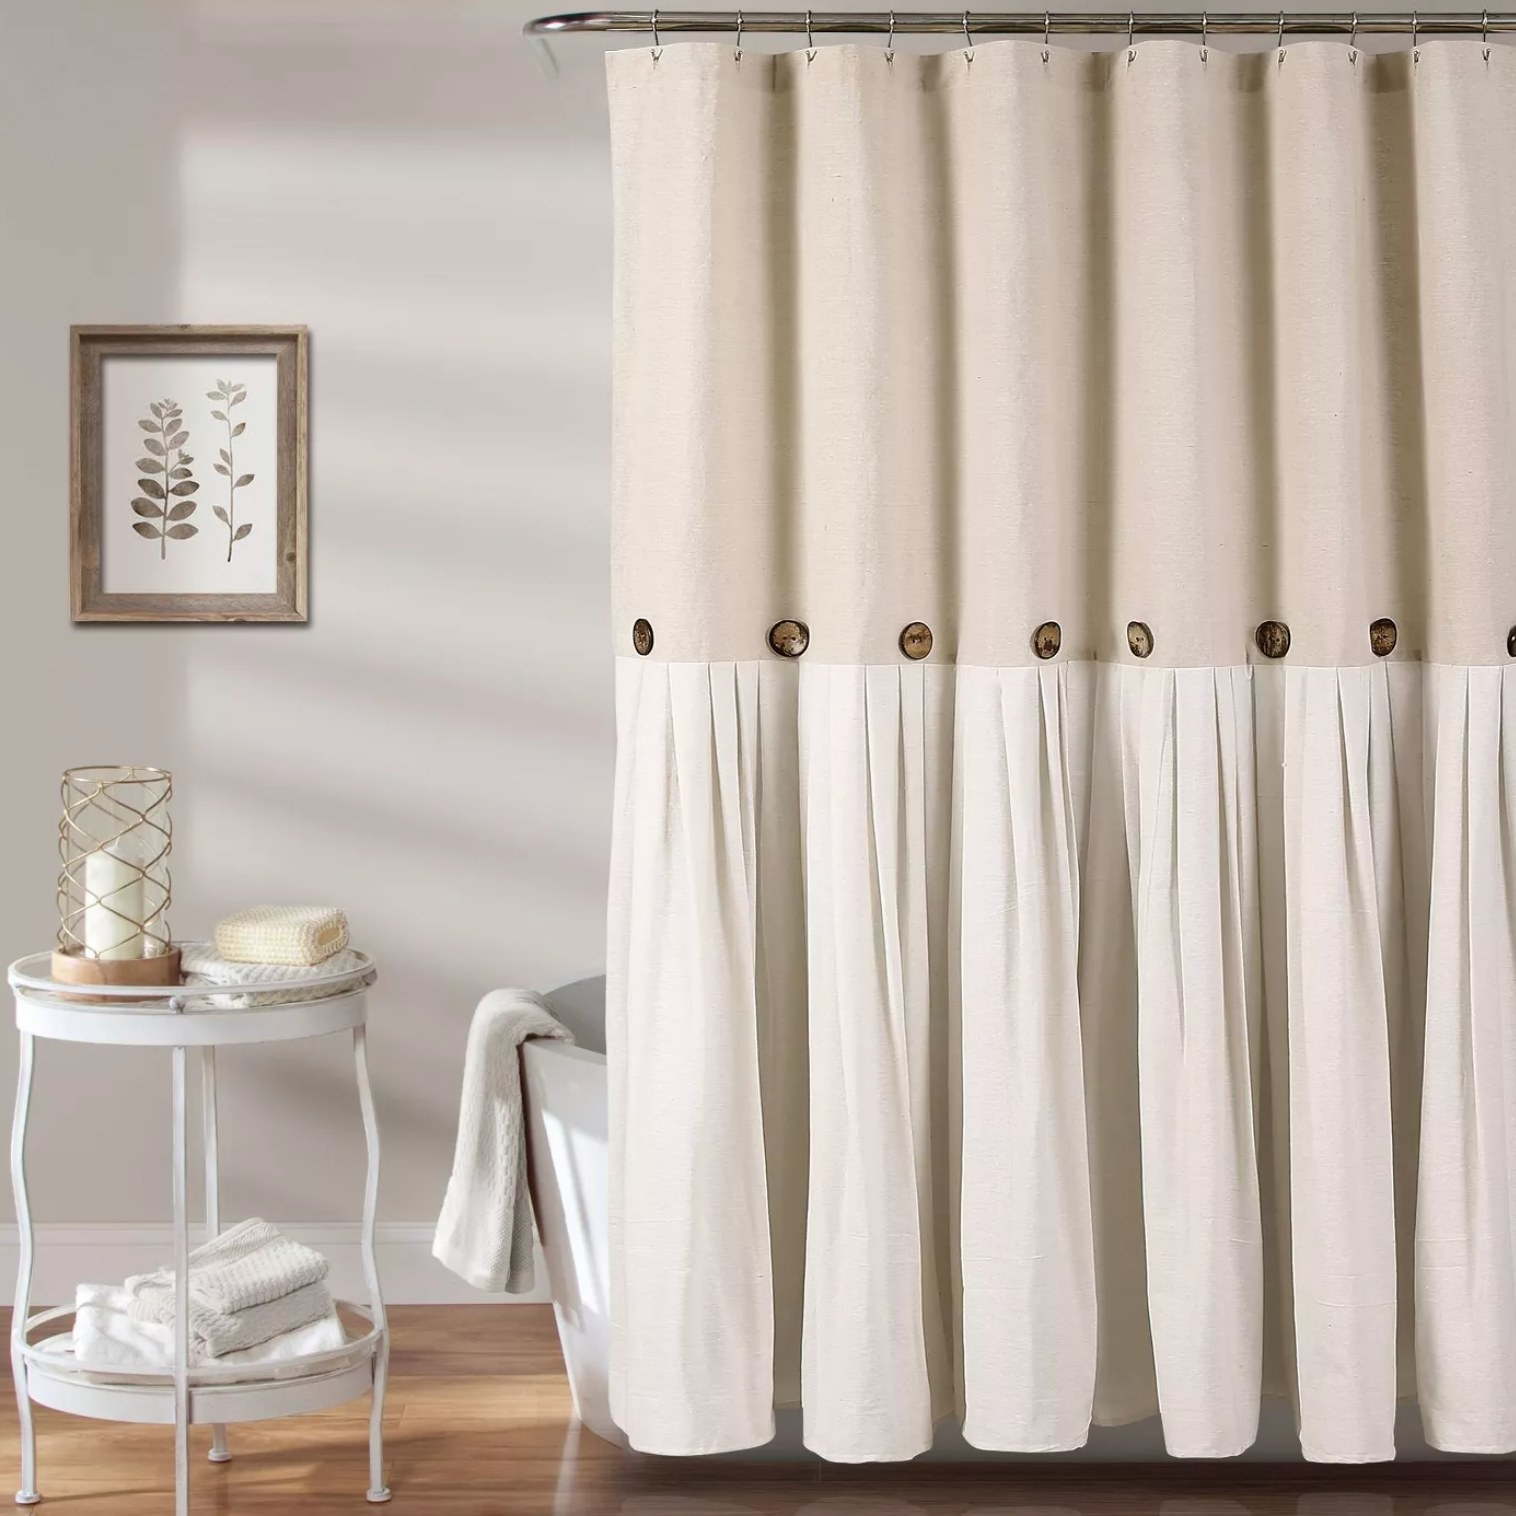 The beige curtain hanging over a bathtub with a side table next to it